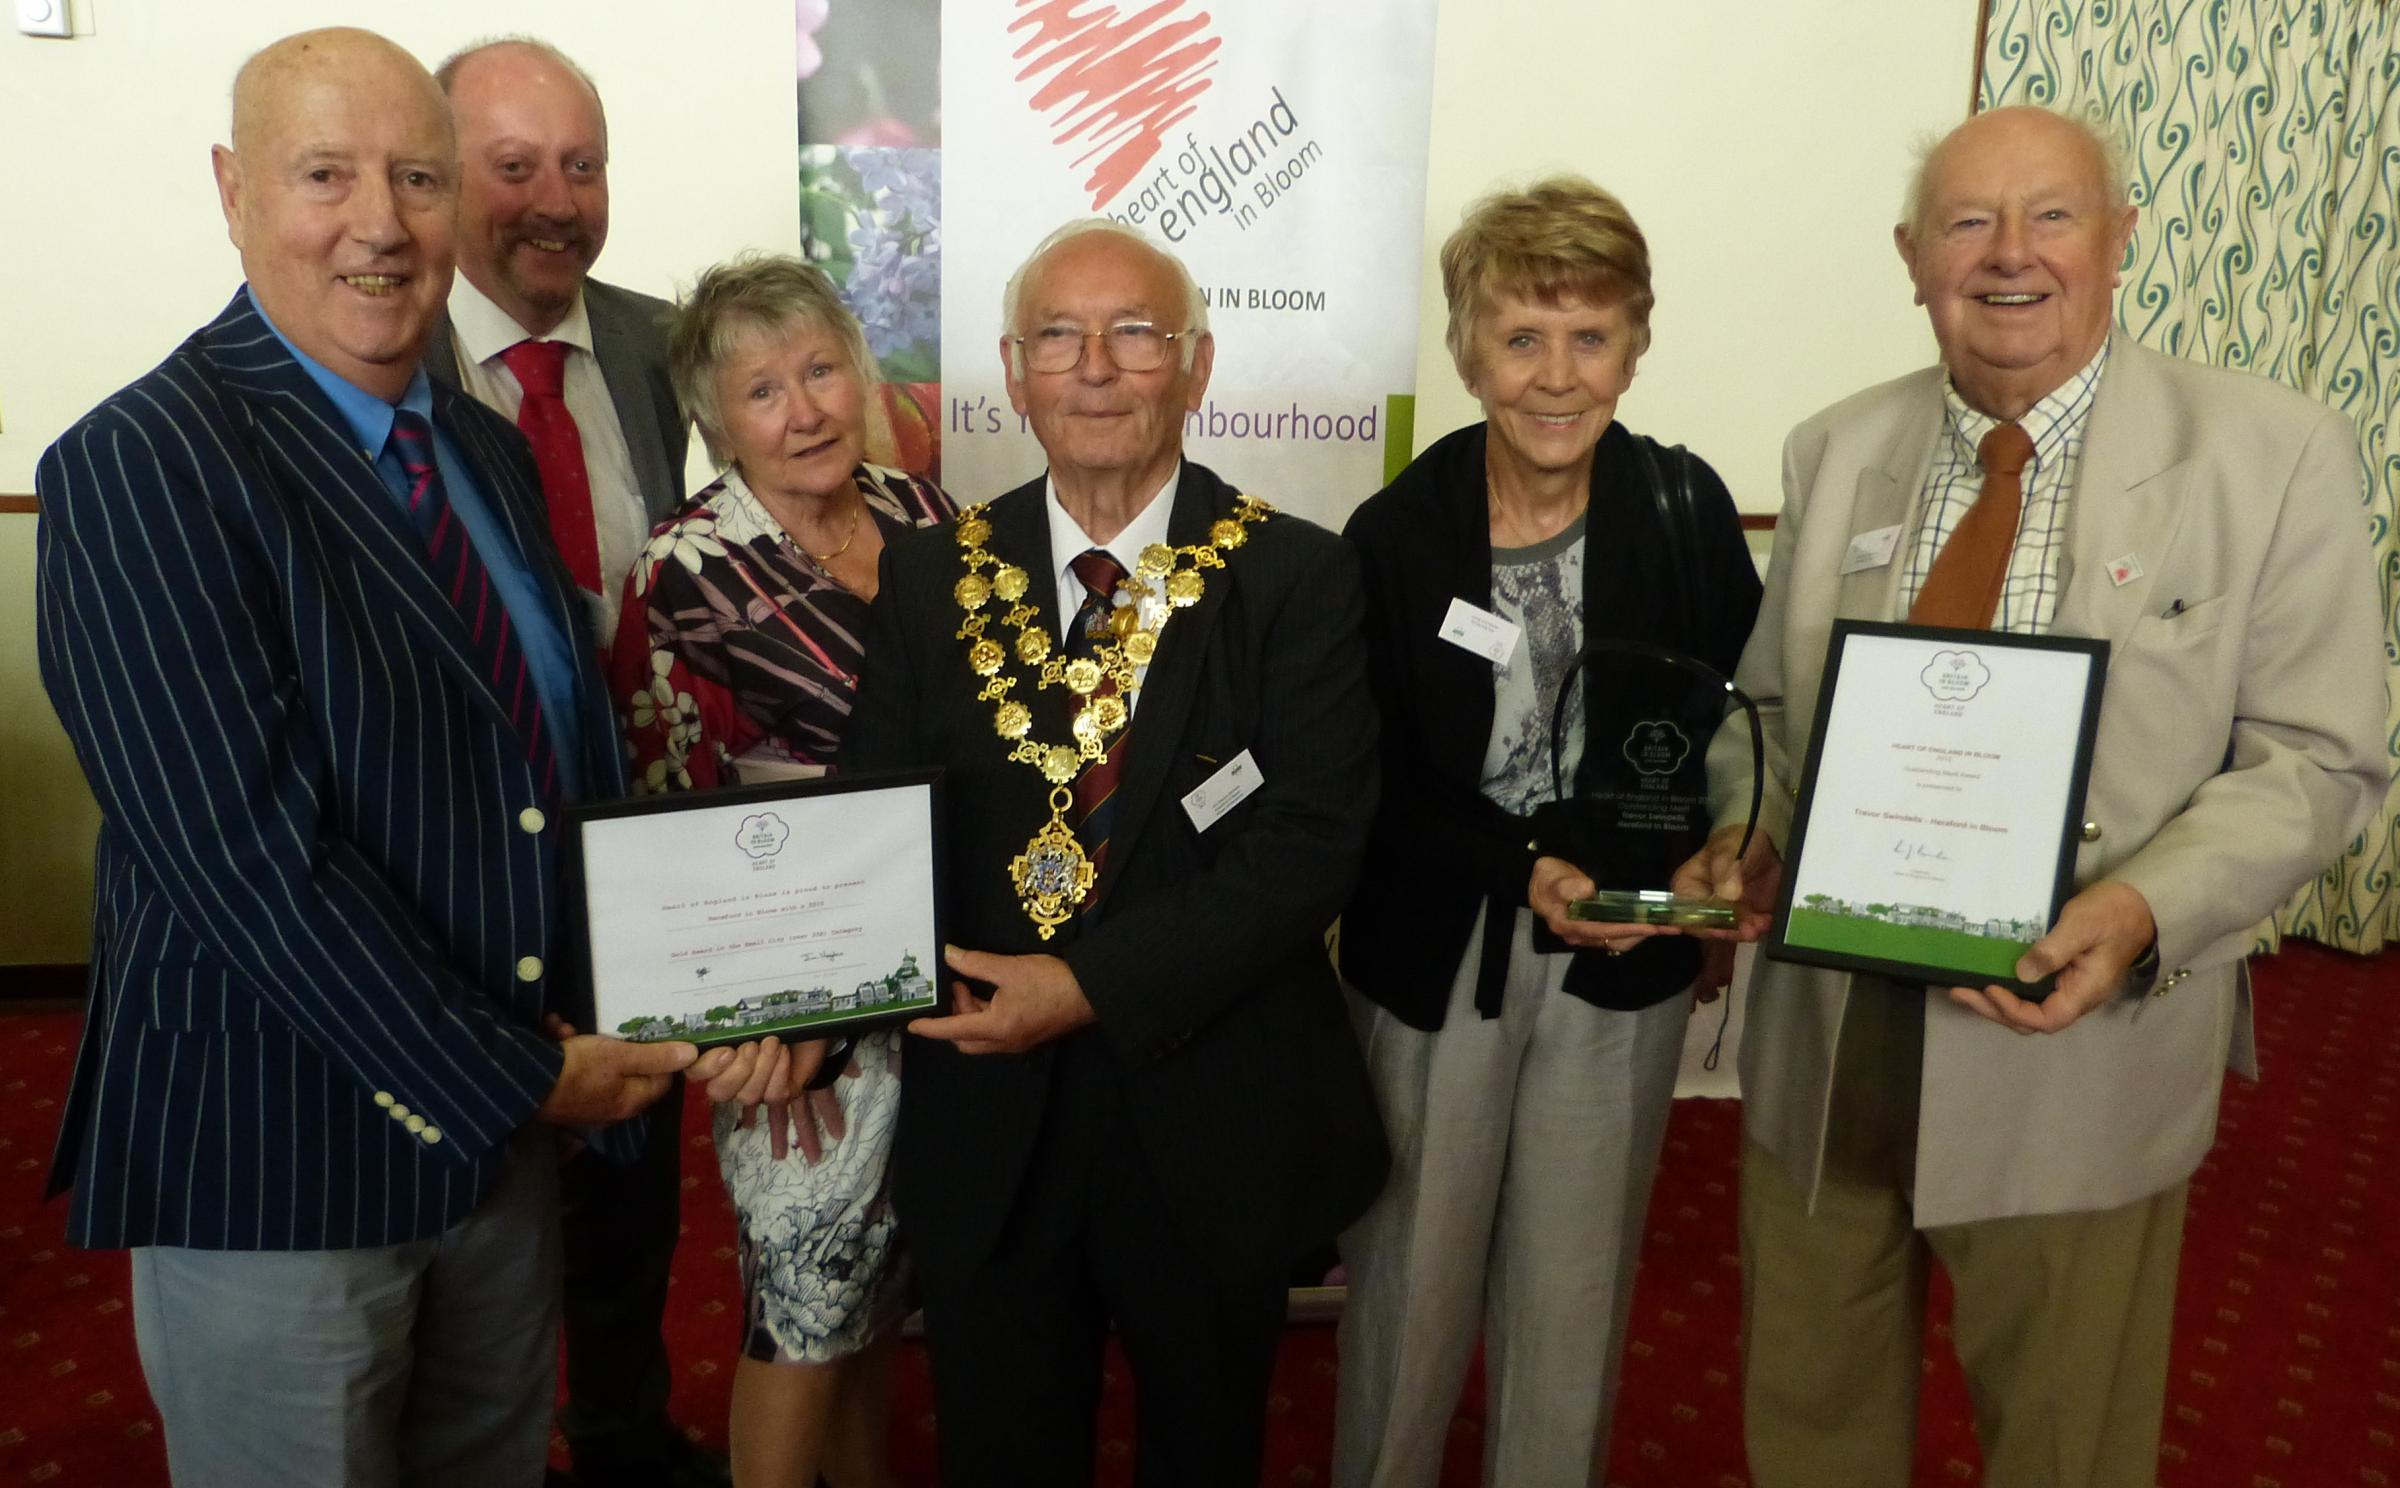 The Hereford in Bloom team, alongside the Mayor, councillor Charles Nicholls, are (from left) Peter Hill, Paul Hodges, Angela Pendleton, Rita Bishop and Trevor Swindells, who also won the award for the most outstanding contribution by an individual in the